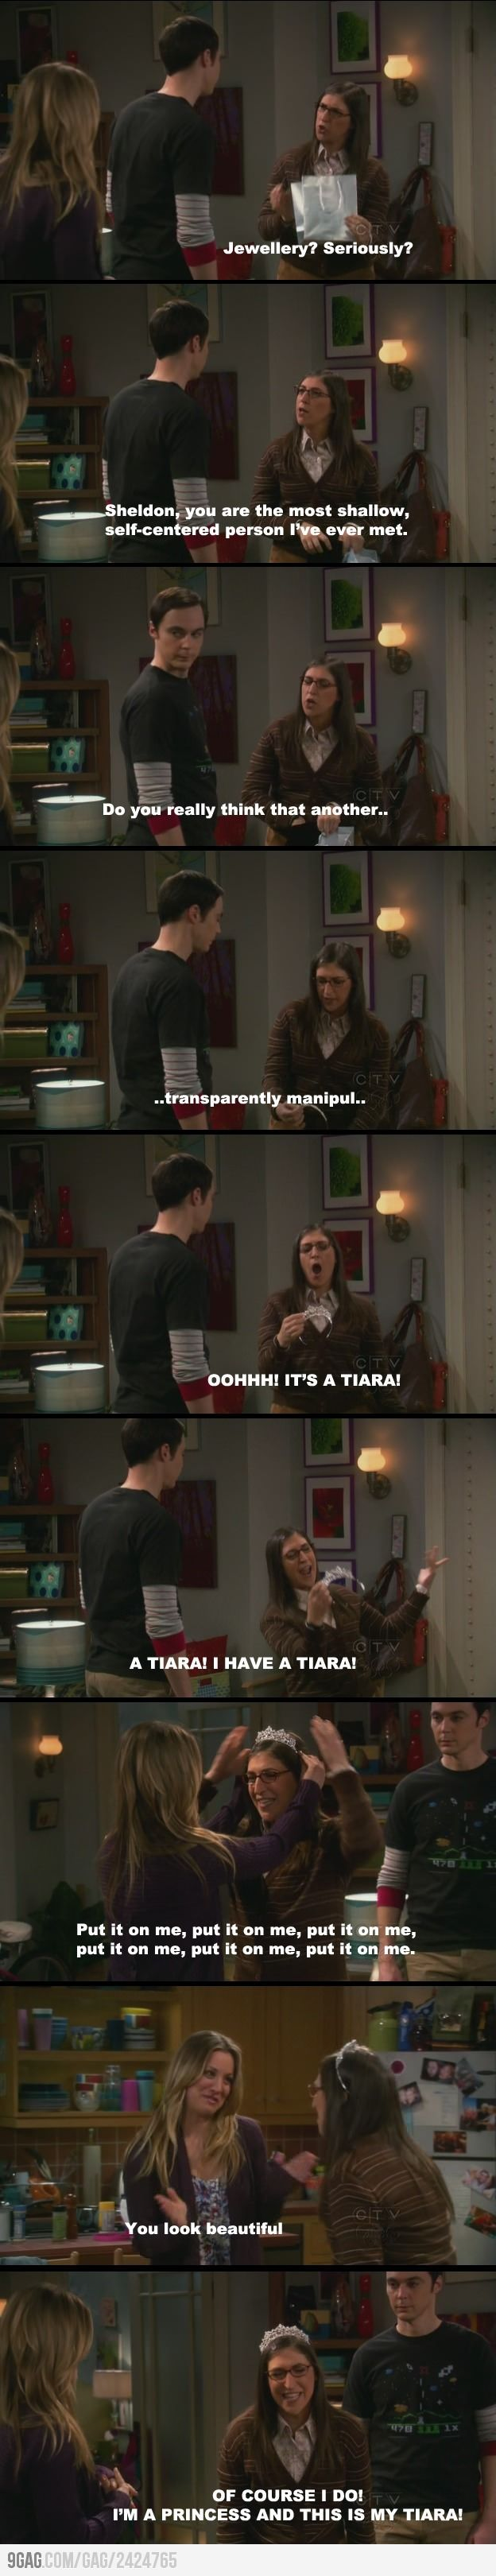 Just Amy Farrah Fowler and her tiara.  Pretty much my reaction when I was given one for a prom-theme party <3